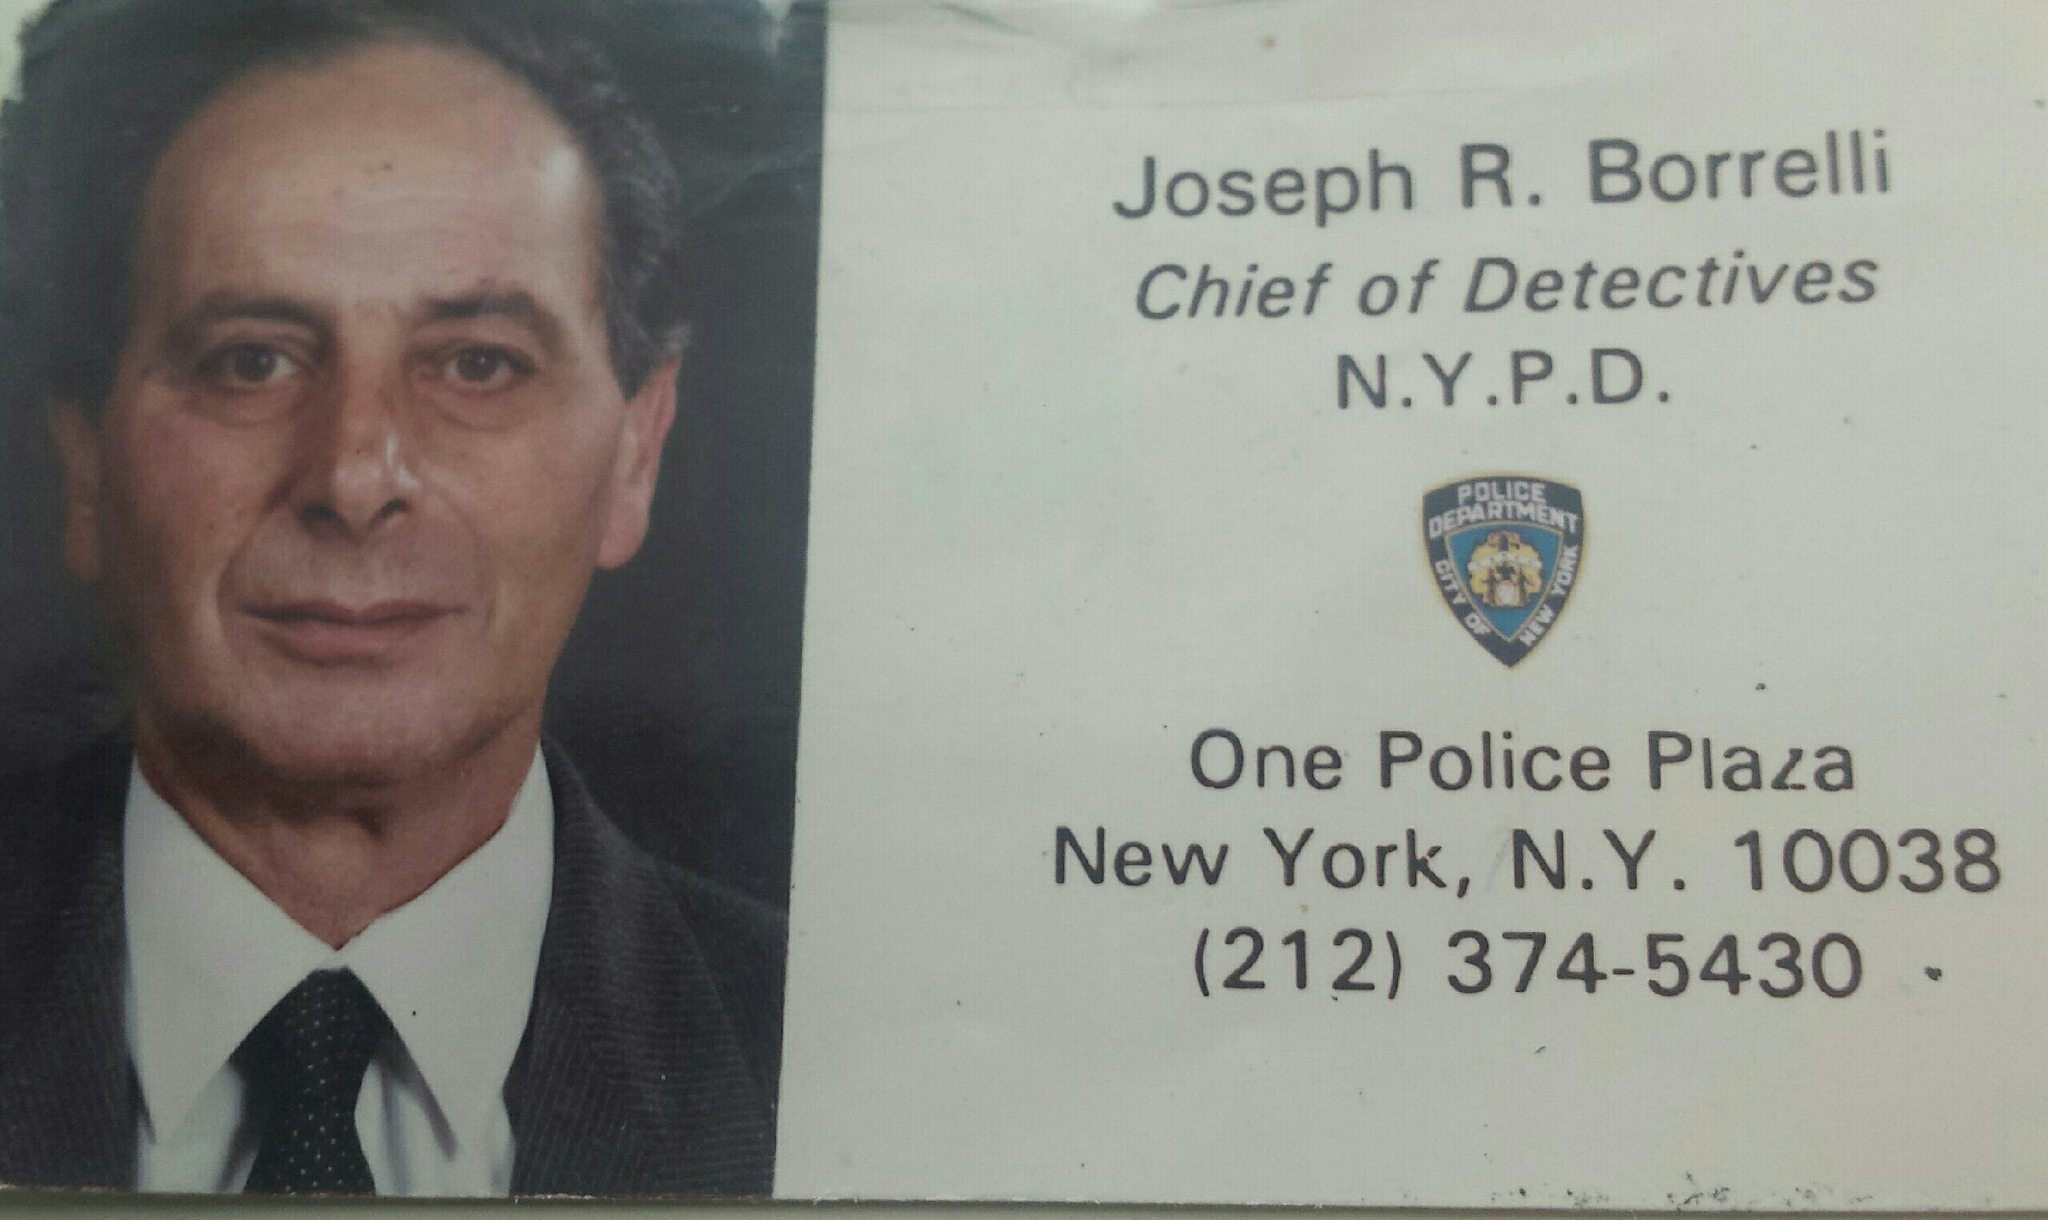 Joseph Borrelli, seen here on his police card, was part of a task force assigned to catch the Son of Sam after a series of murders throughout New York City in 1976 and 1977. Police arrested David Berkowitz on Aug. 10, 1977.